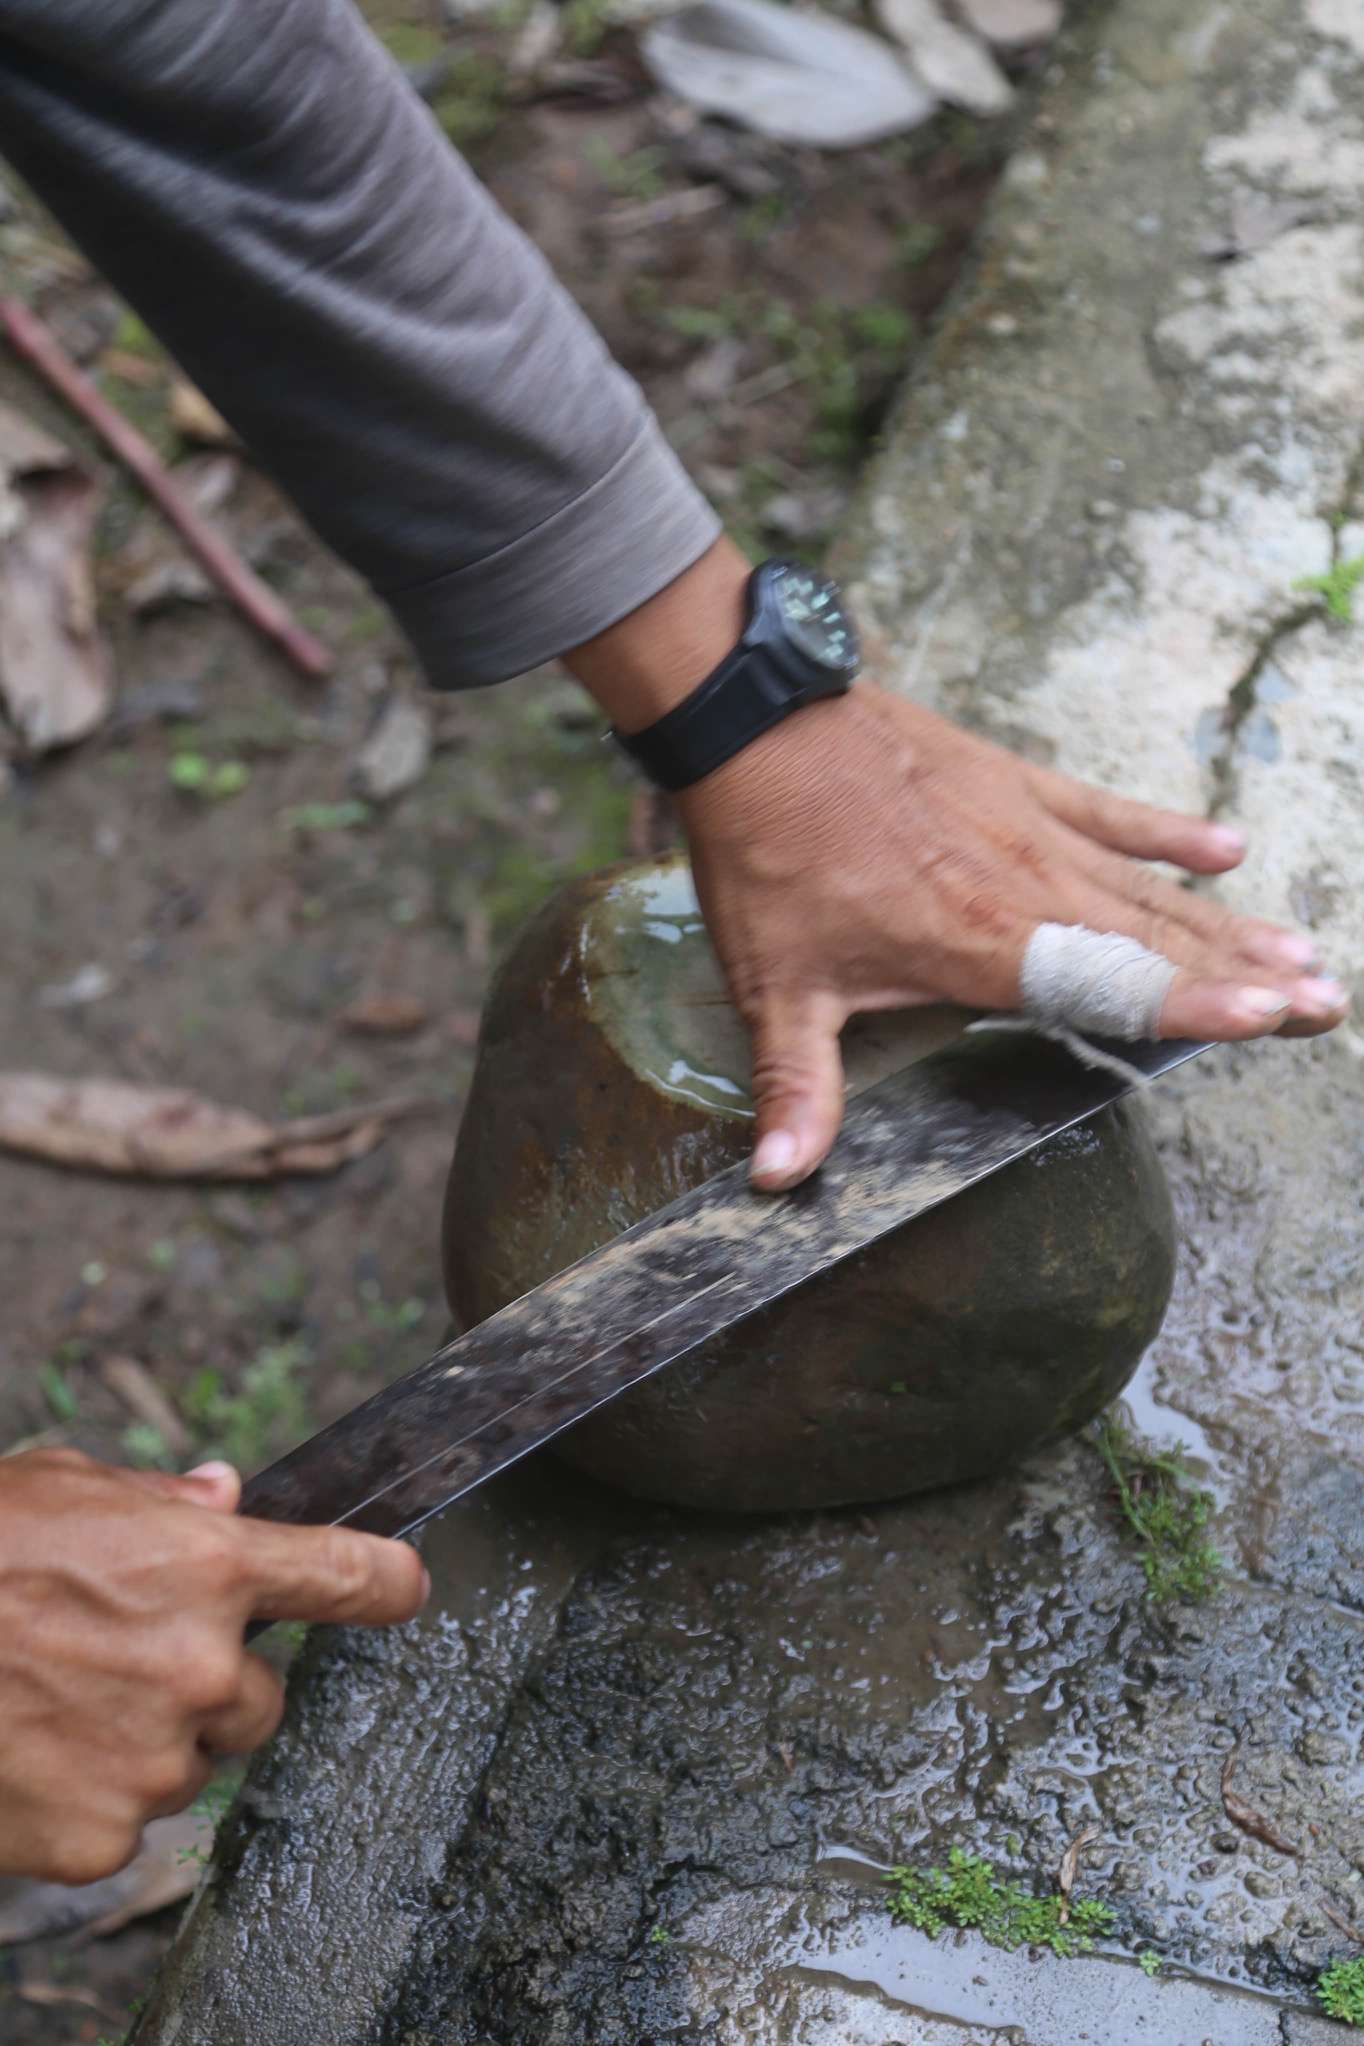 A good sized rock is a valuable thing along the Amazon River. There are few of them. They are given as gifts and are used to sharpen knives and machetes.